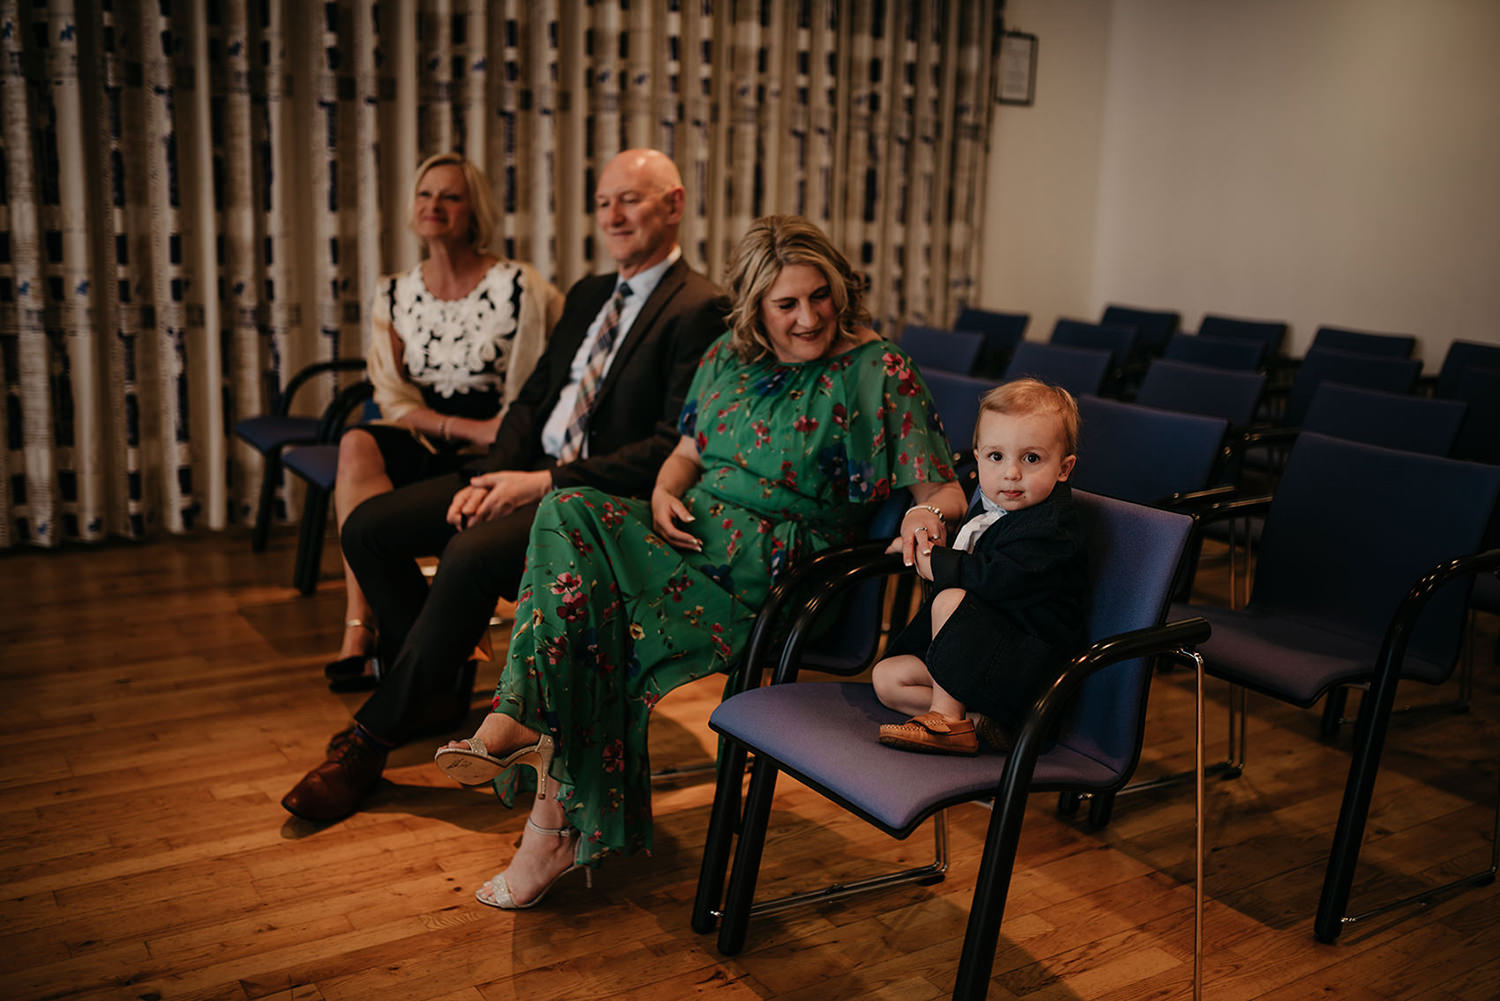 Couple's parents and kids before their Isle of Man and Northwich elopement ceremony